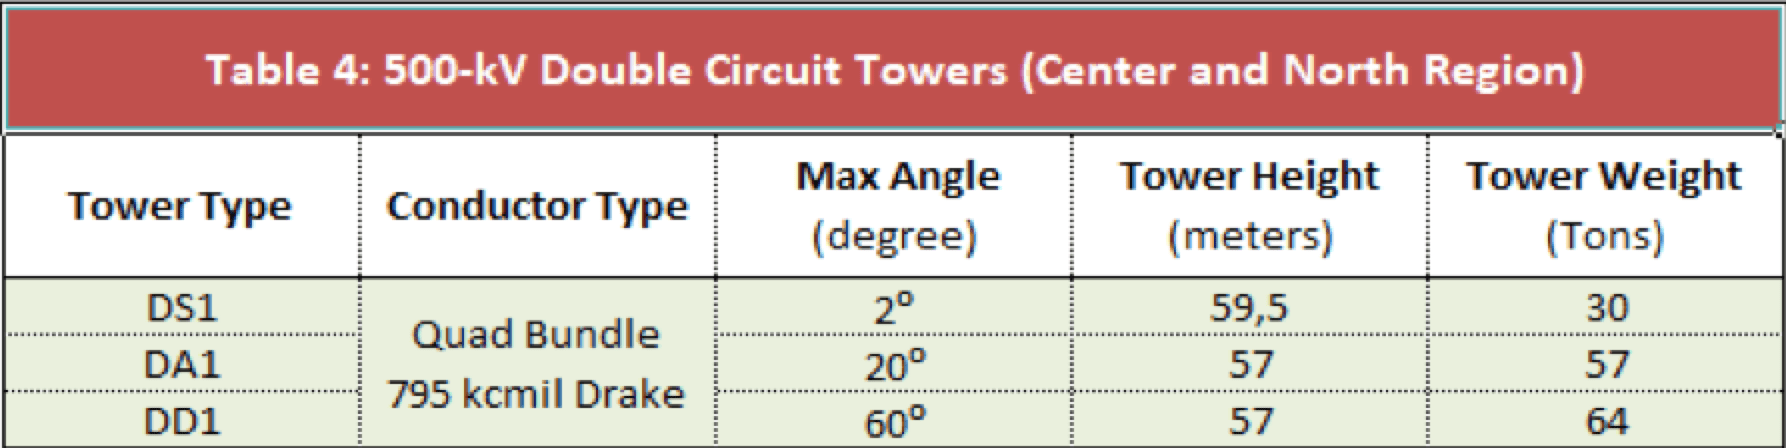 Expanding Grid in Pakistan Confronts Challenges of Pollution, Icing & Lightning (Part 2 of 2) characteristics of insulators and towers generally used on NTDC 500 kV systems 1